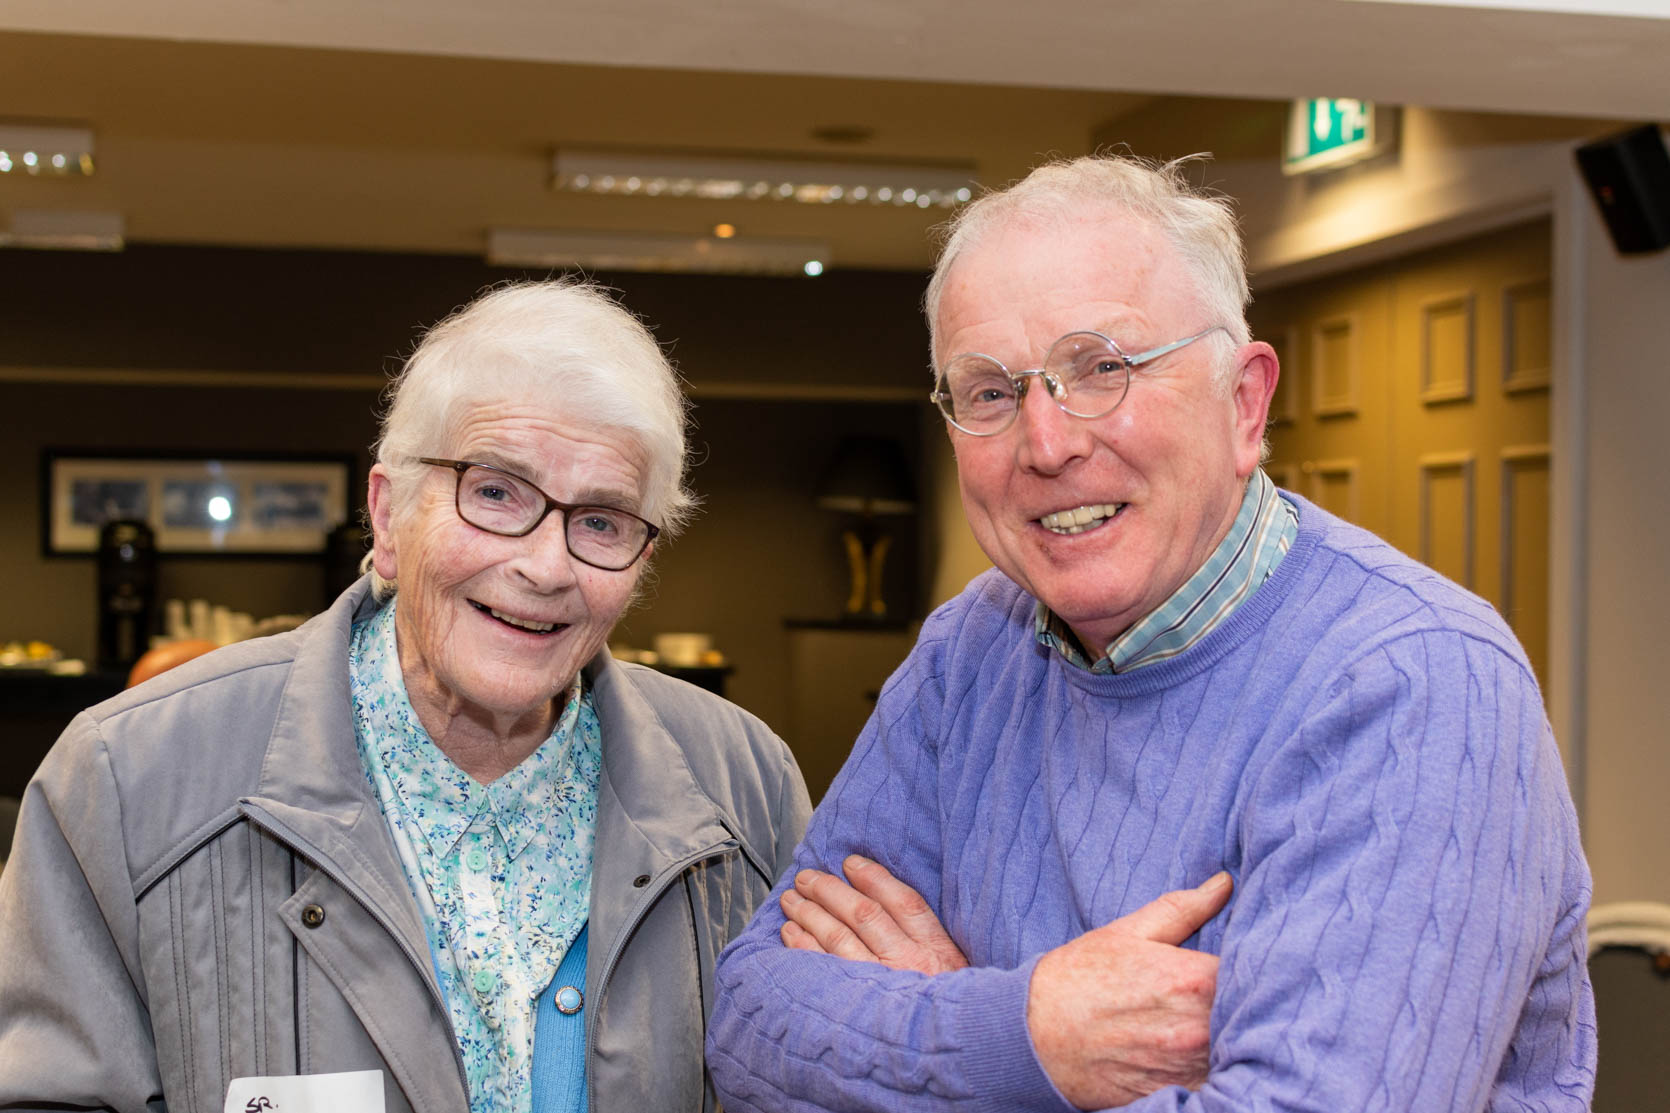 Two Augustinians sharing a smile and posing for a photo at an event for Lay Augustinians.